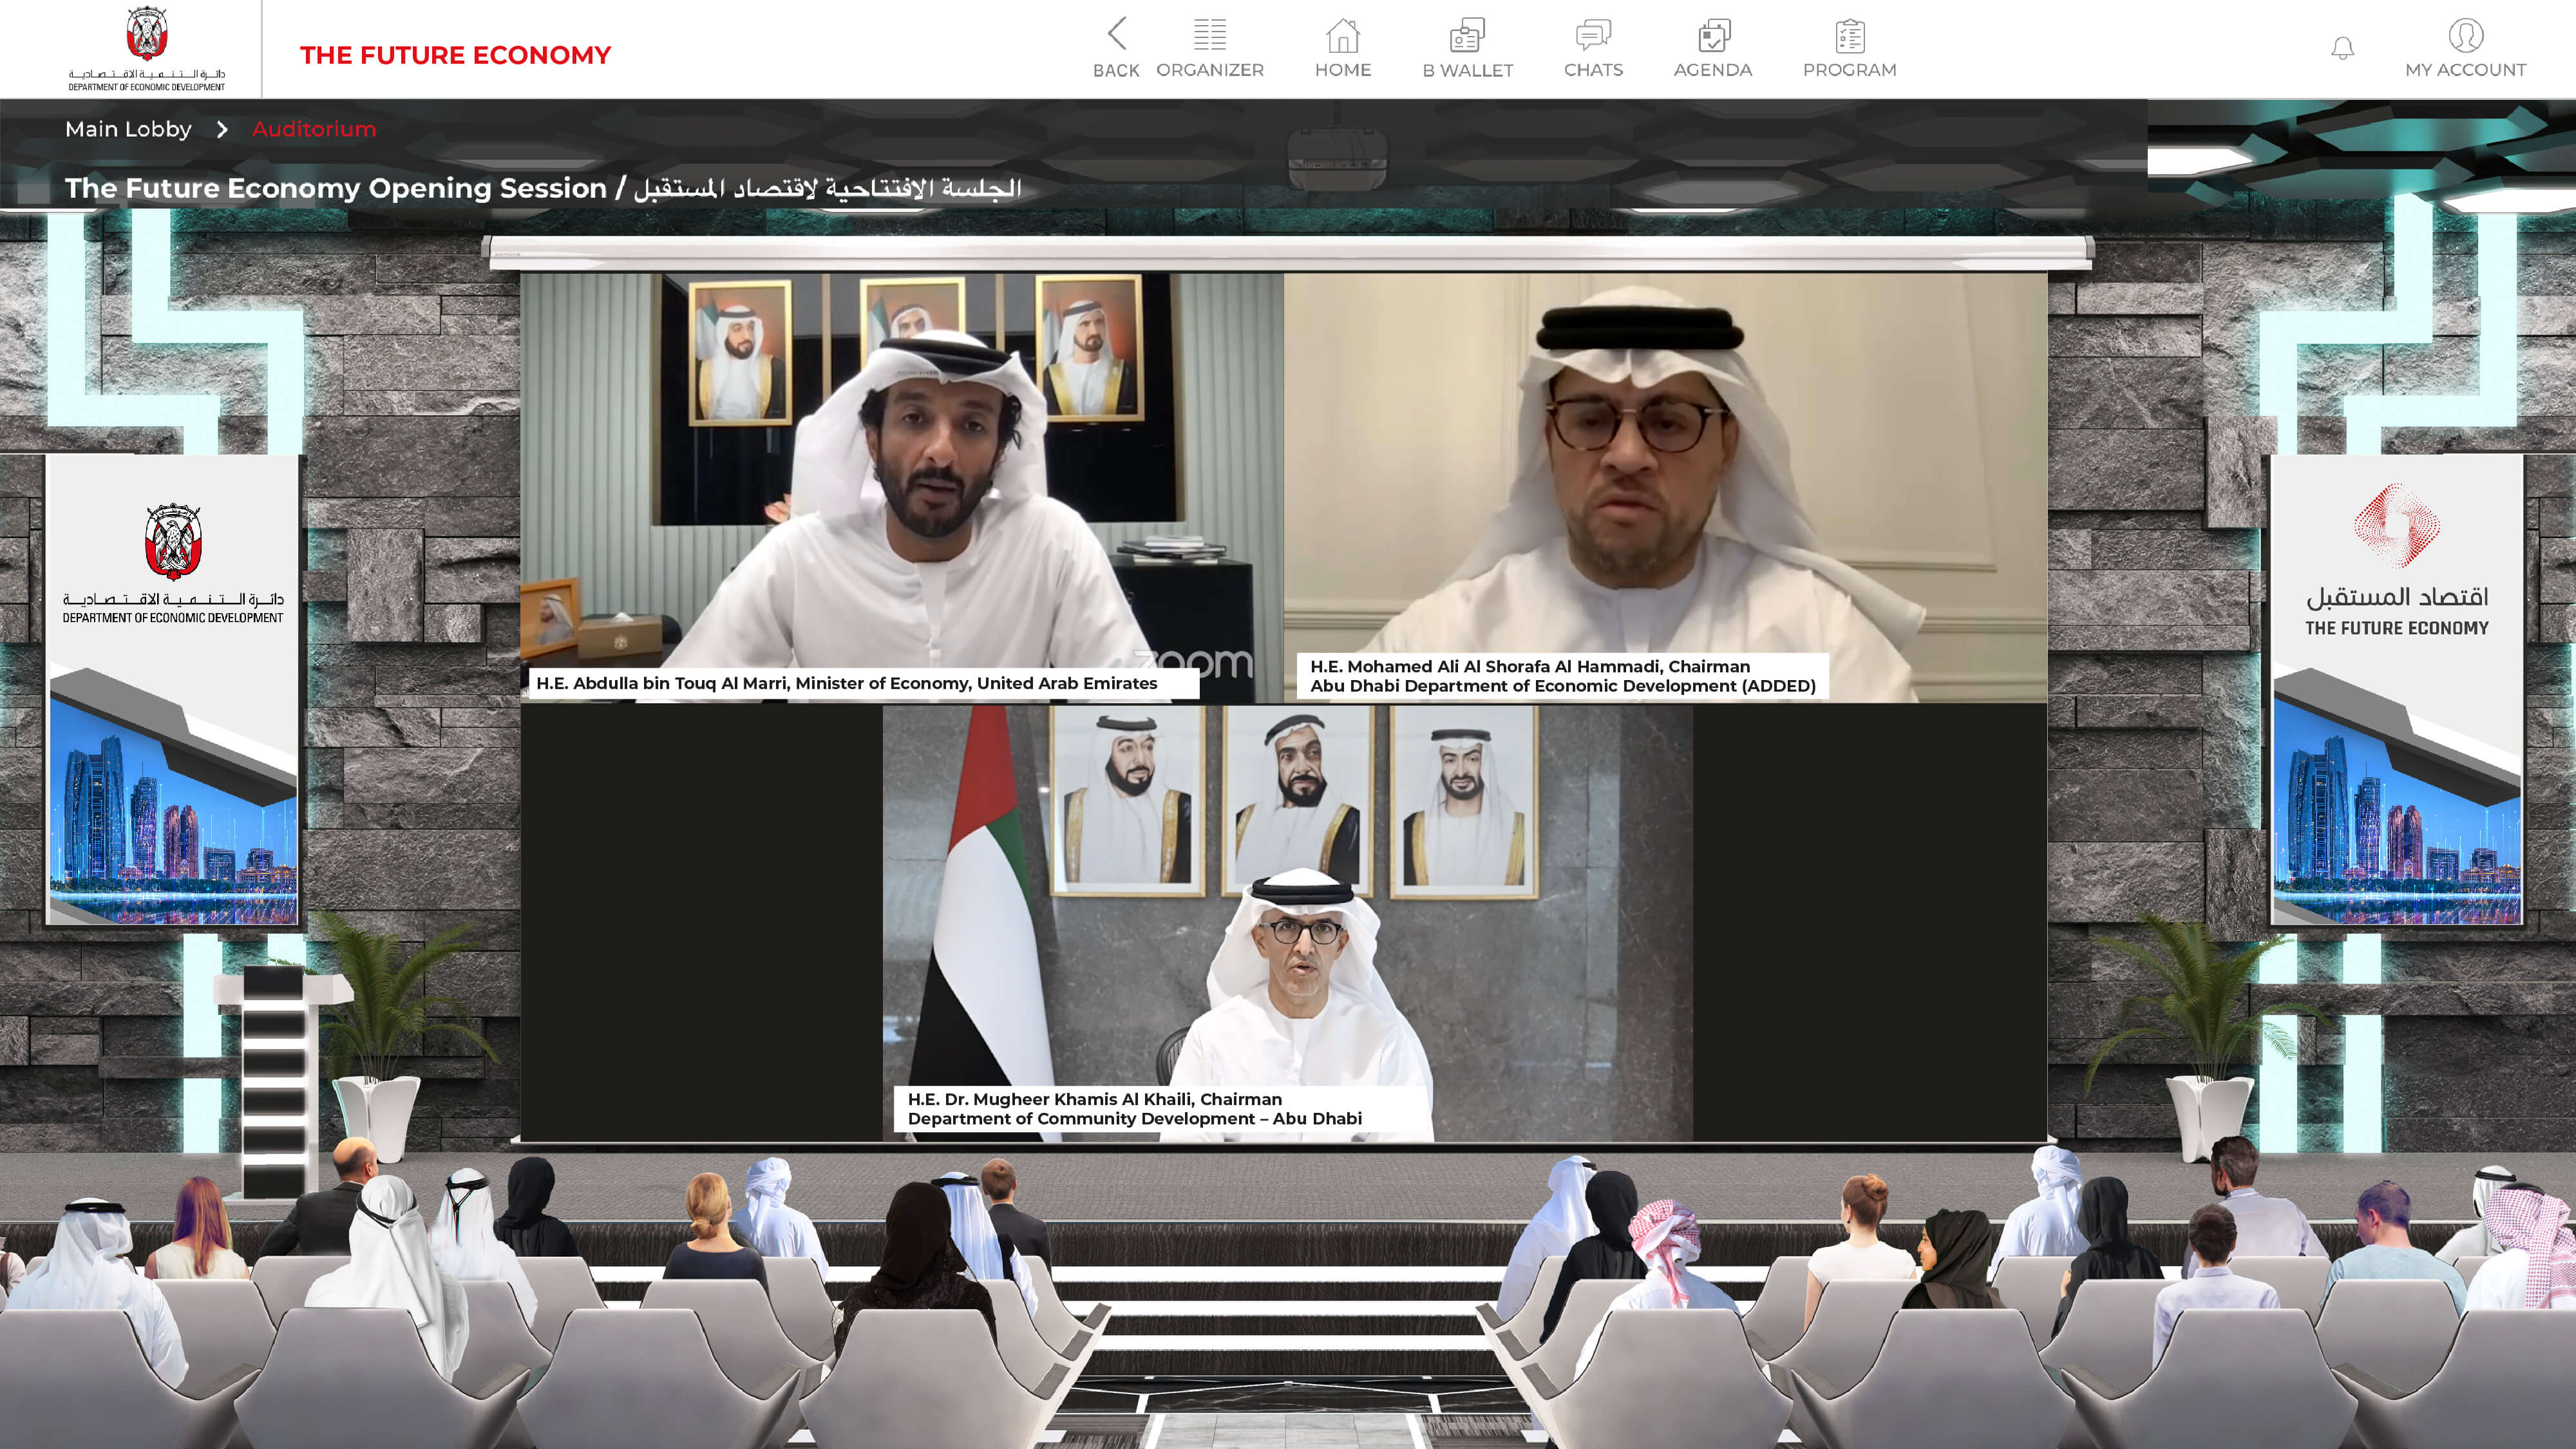 abu-dhabi-reaffirms-that-smes-are-top-of-the-agenda-for-the-emirate